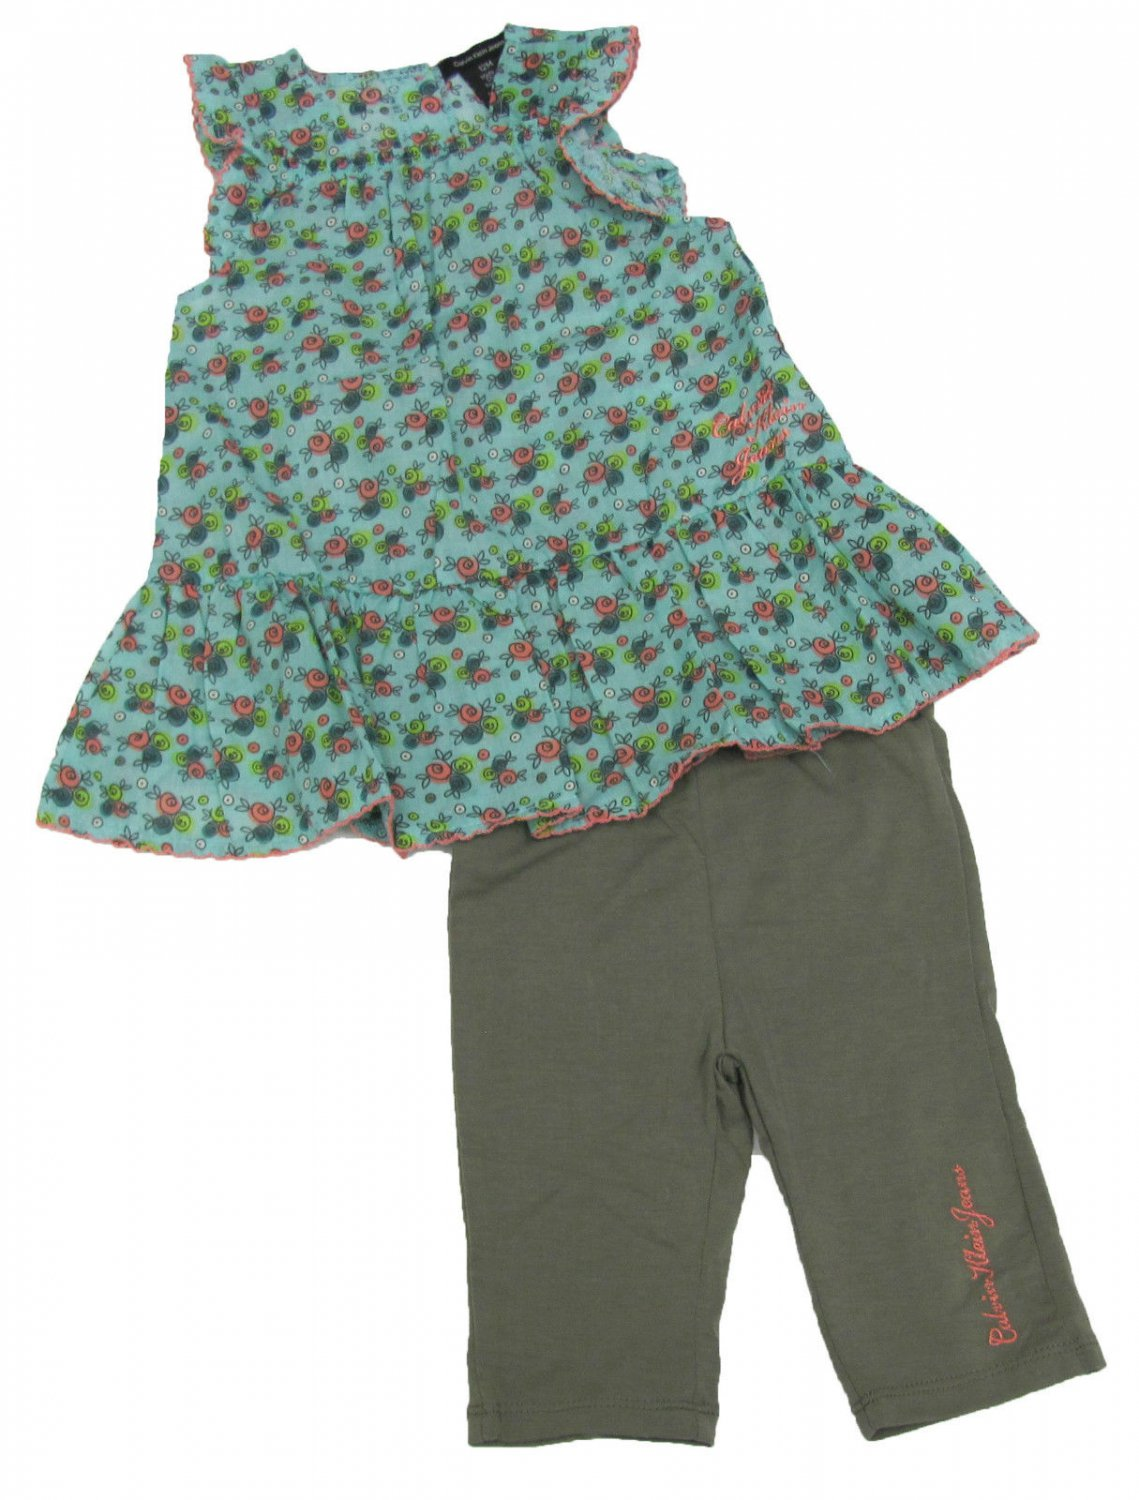 Calvin Klein Jeans 18 Mos Girls 2-Piece Set Blue Floral Tank Top Shirt Green Leggings